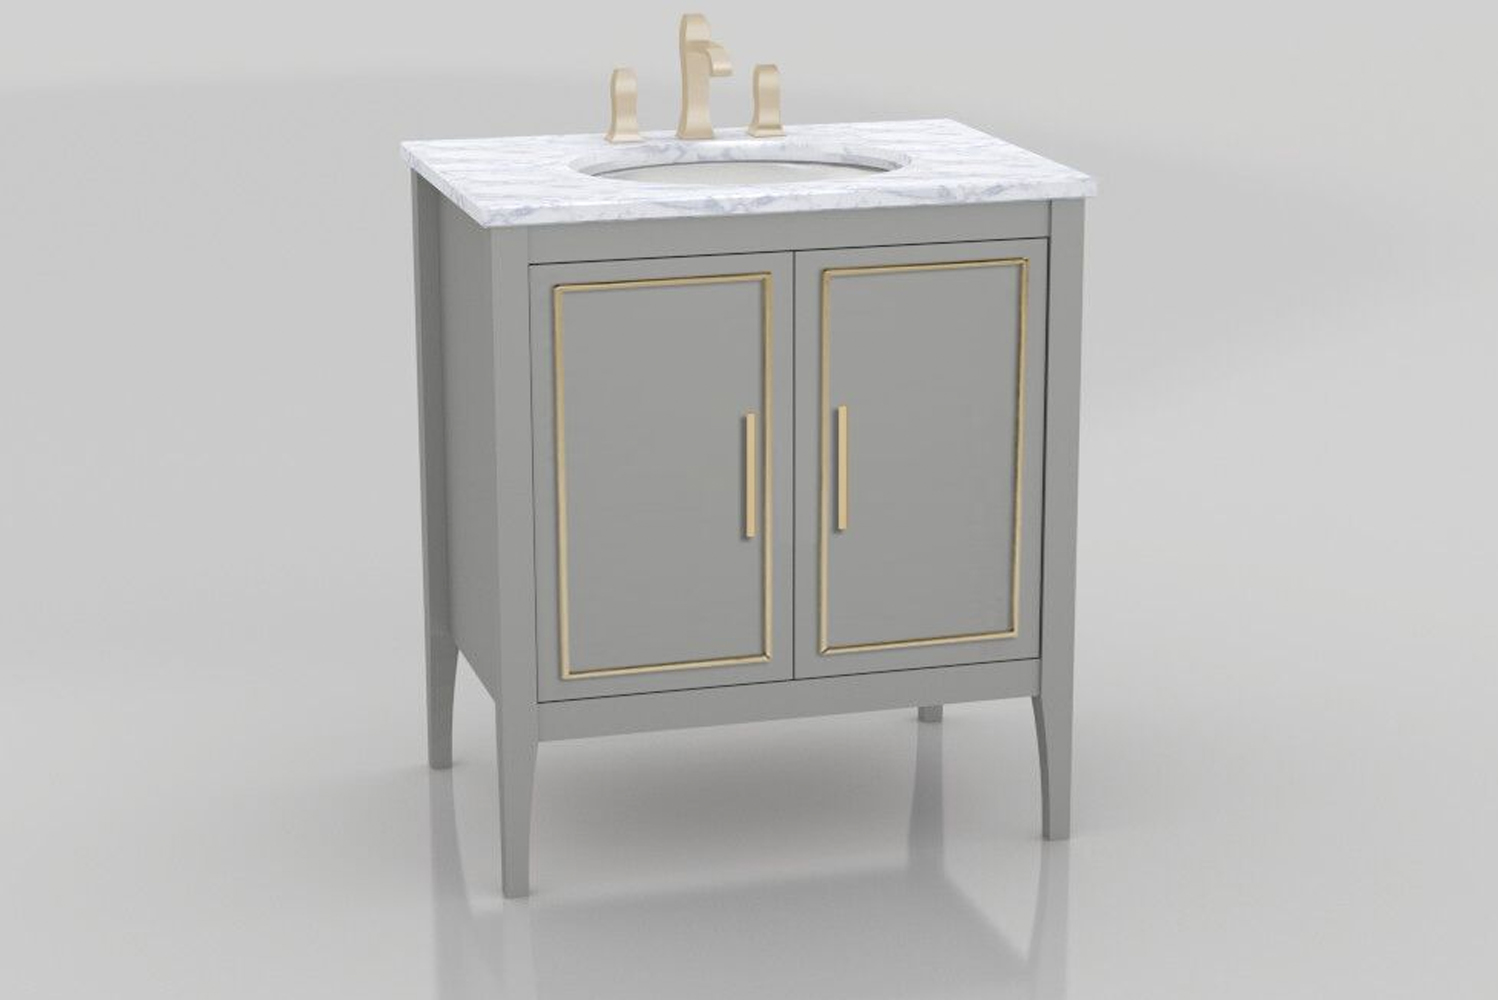 The vanity is available as a wall-mounted unit or as a freestanding model with exposed legs.